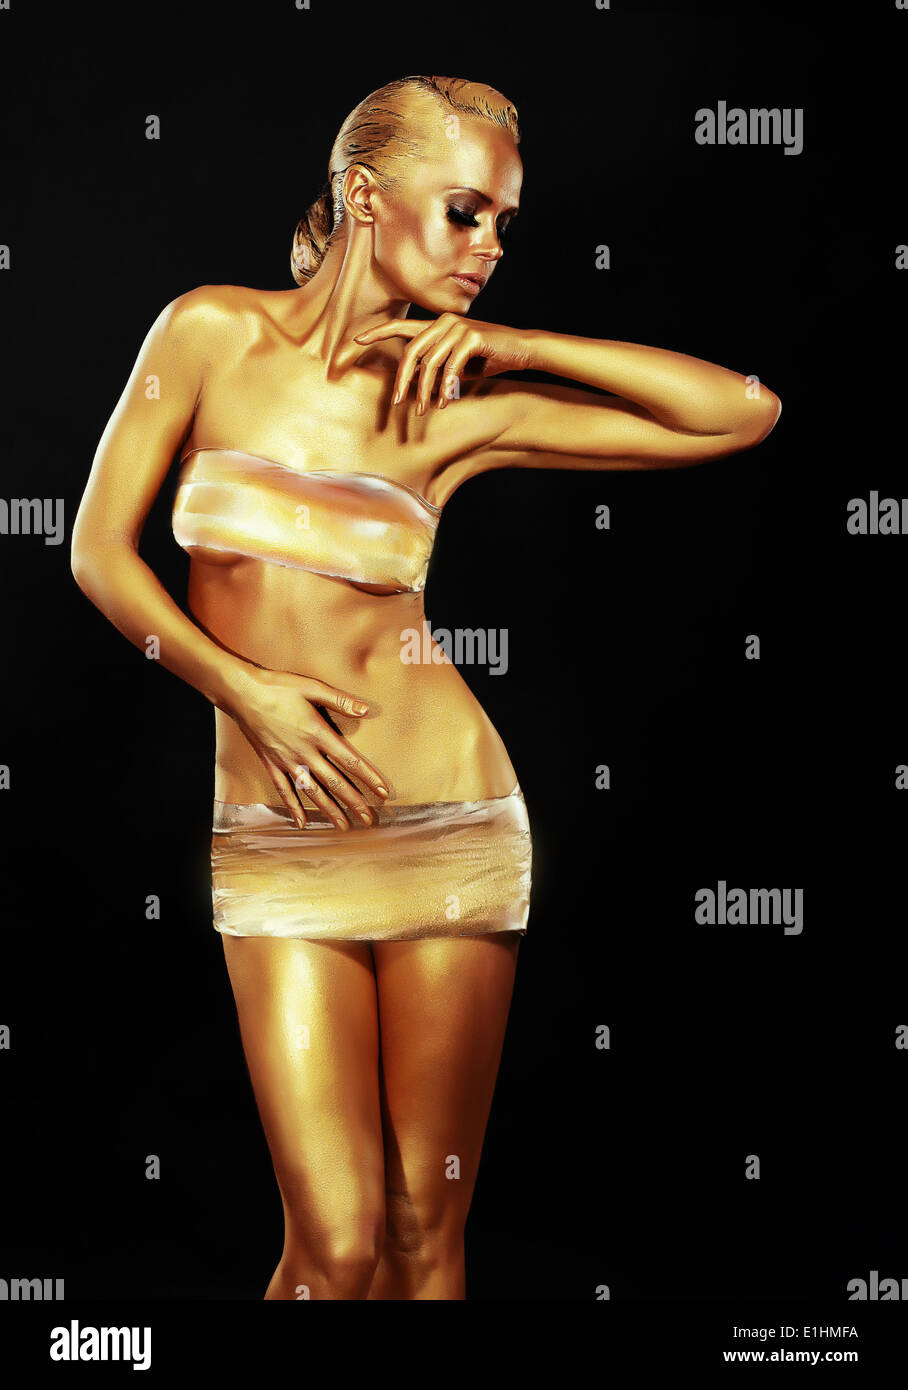 Glitter. Golden Woman over Black Background. Creative Contemporary Design - Stock Image